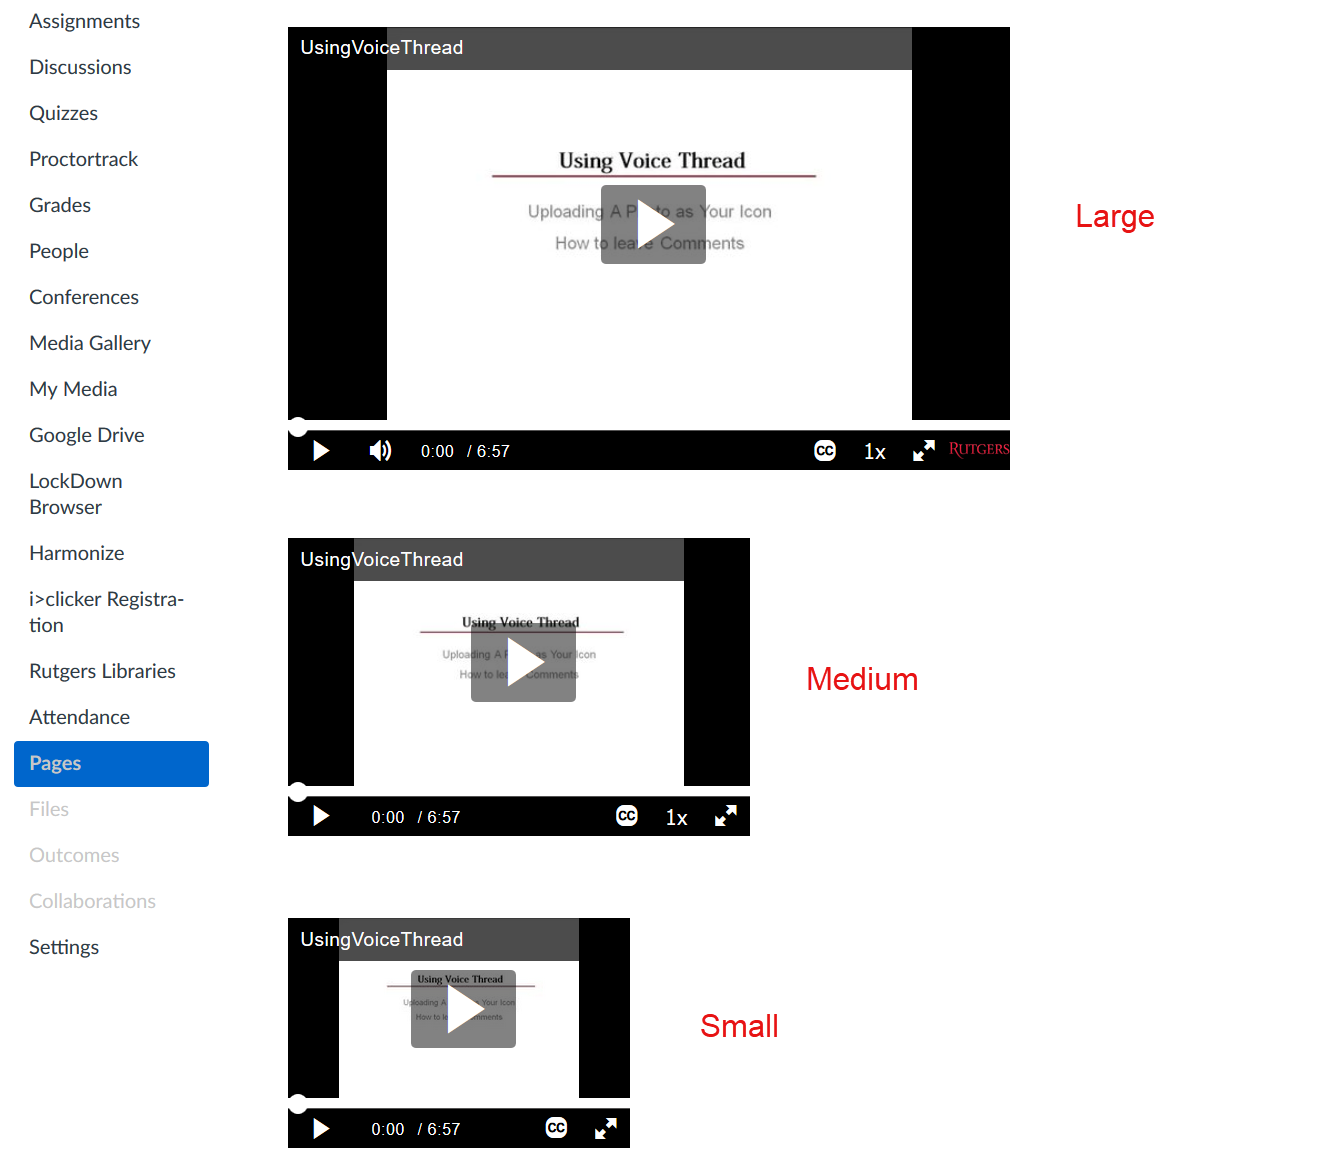 comparison of small, medium, and large embed sizes